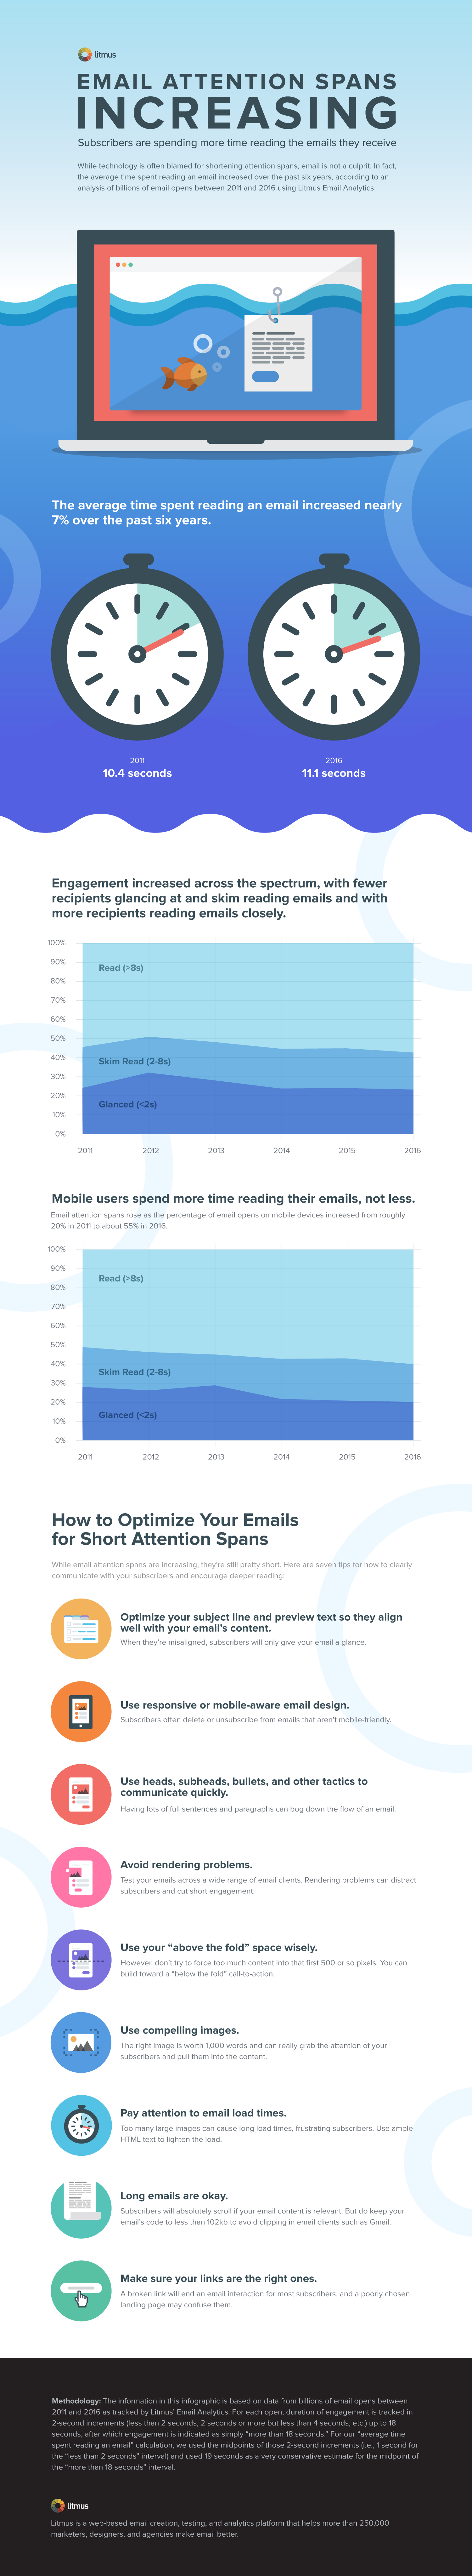 Email-Attention-Spans-Increasing